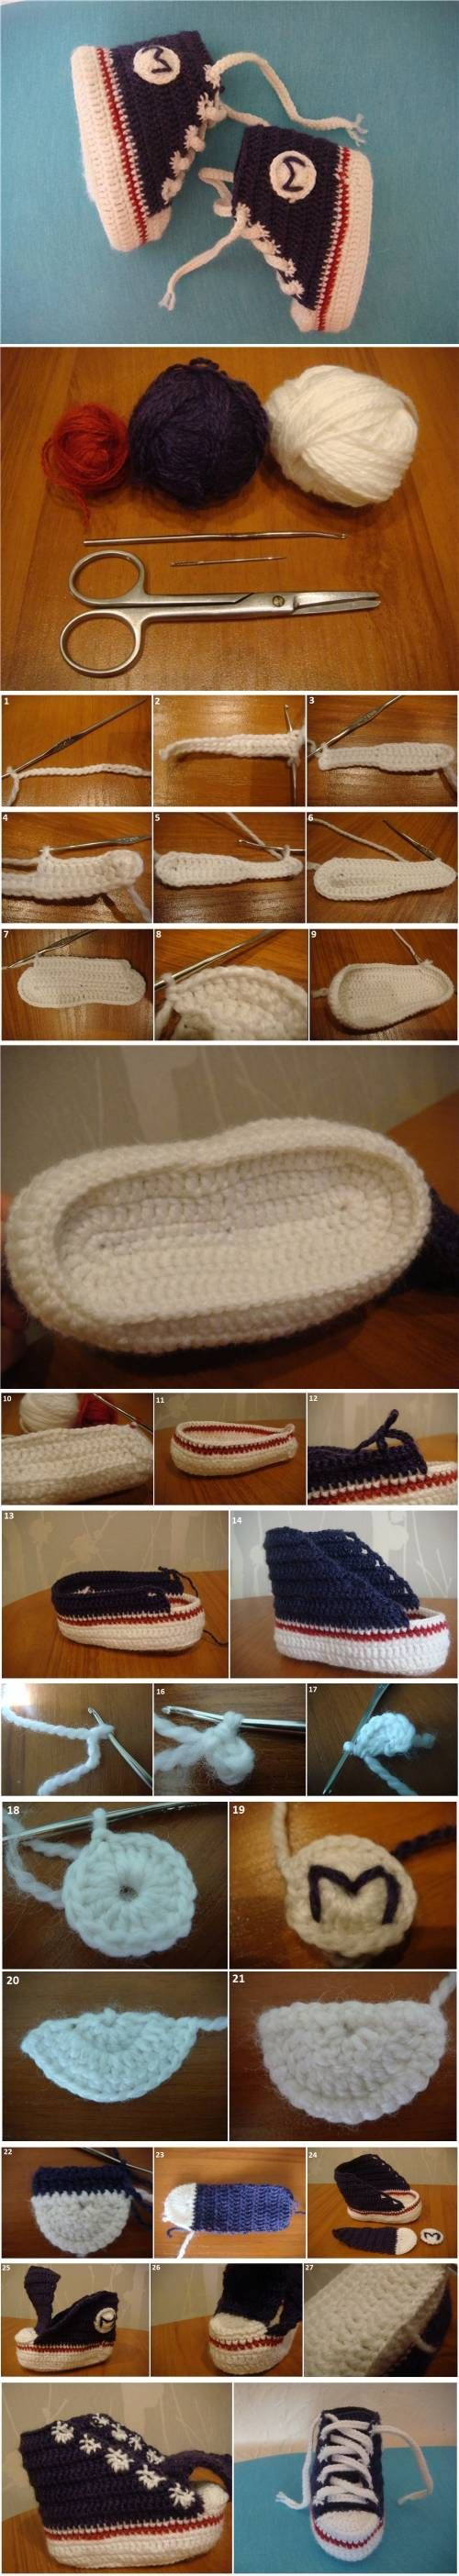 DIY Crochet Tennis Booties DIY Projects | UsefulDIY.com